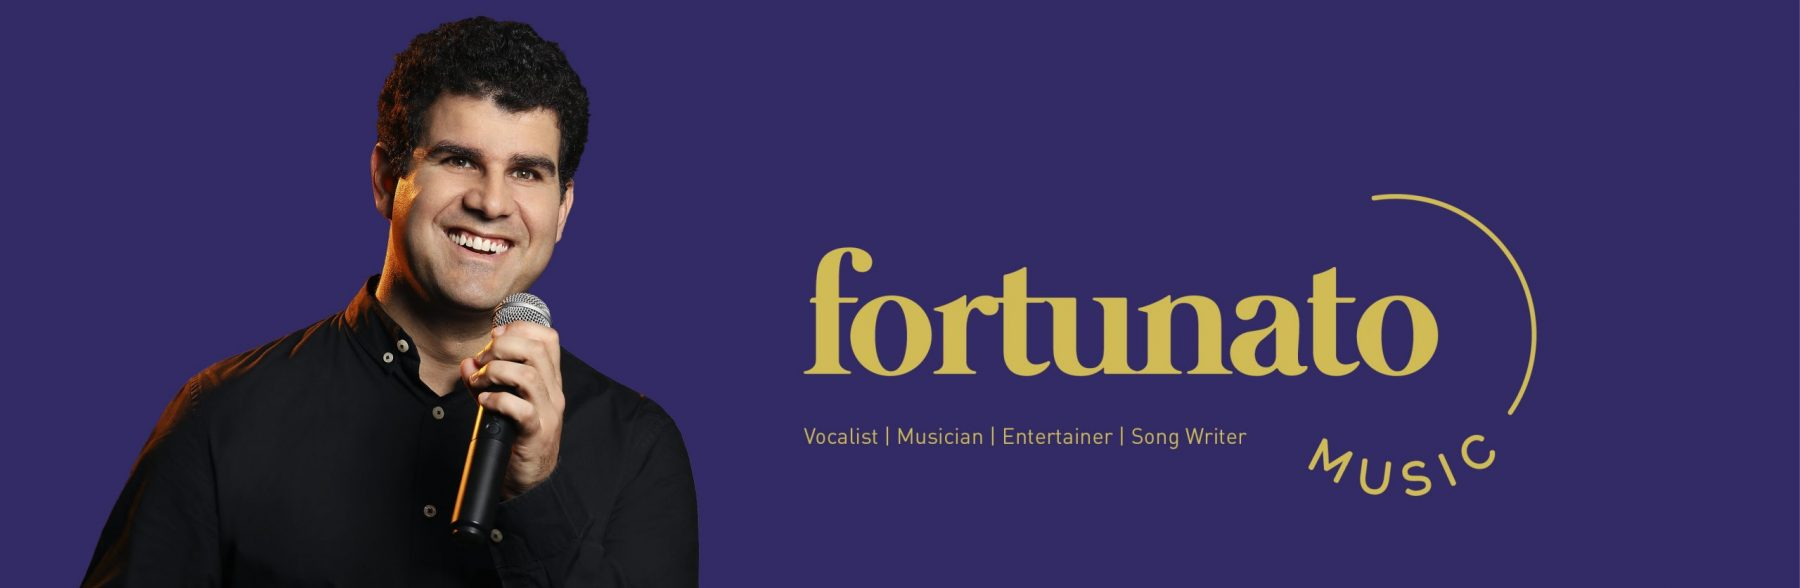 Fortunato Music Official Website